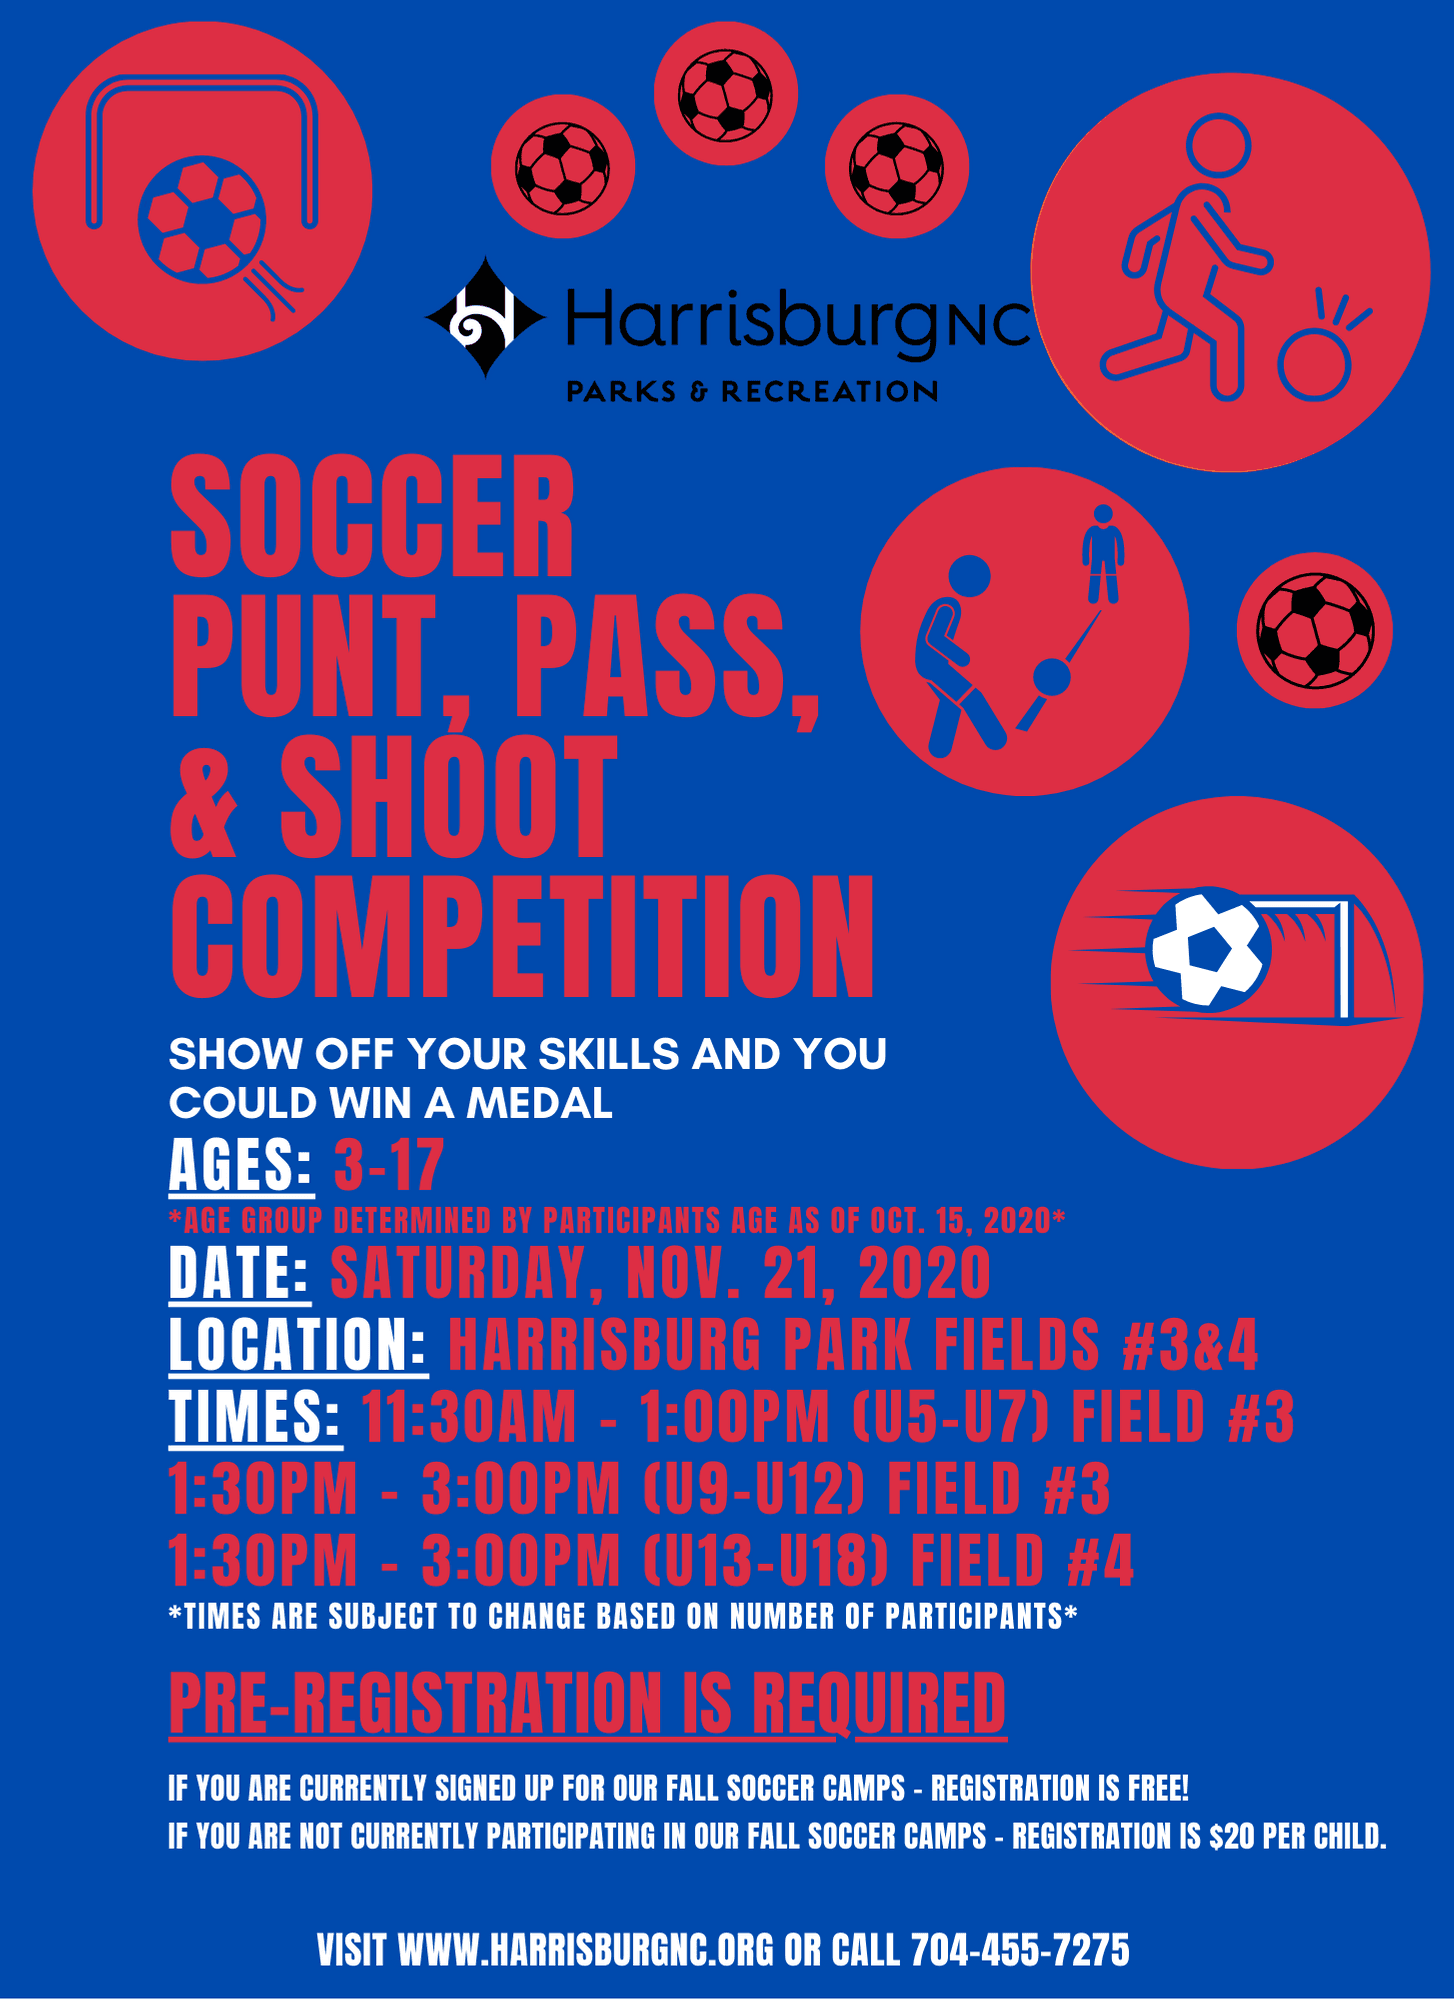 Harrisburg Parks and Recreation - Soccer Punt, Pass, and Shoot Competition Flyer